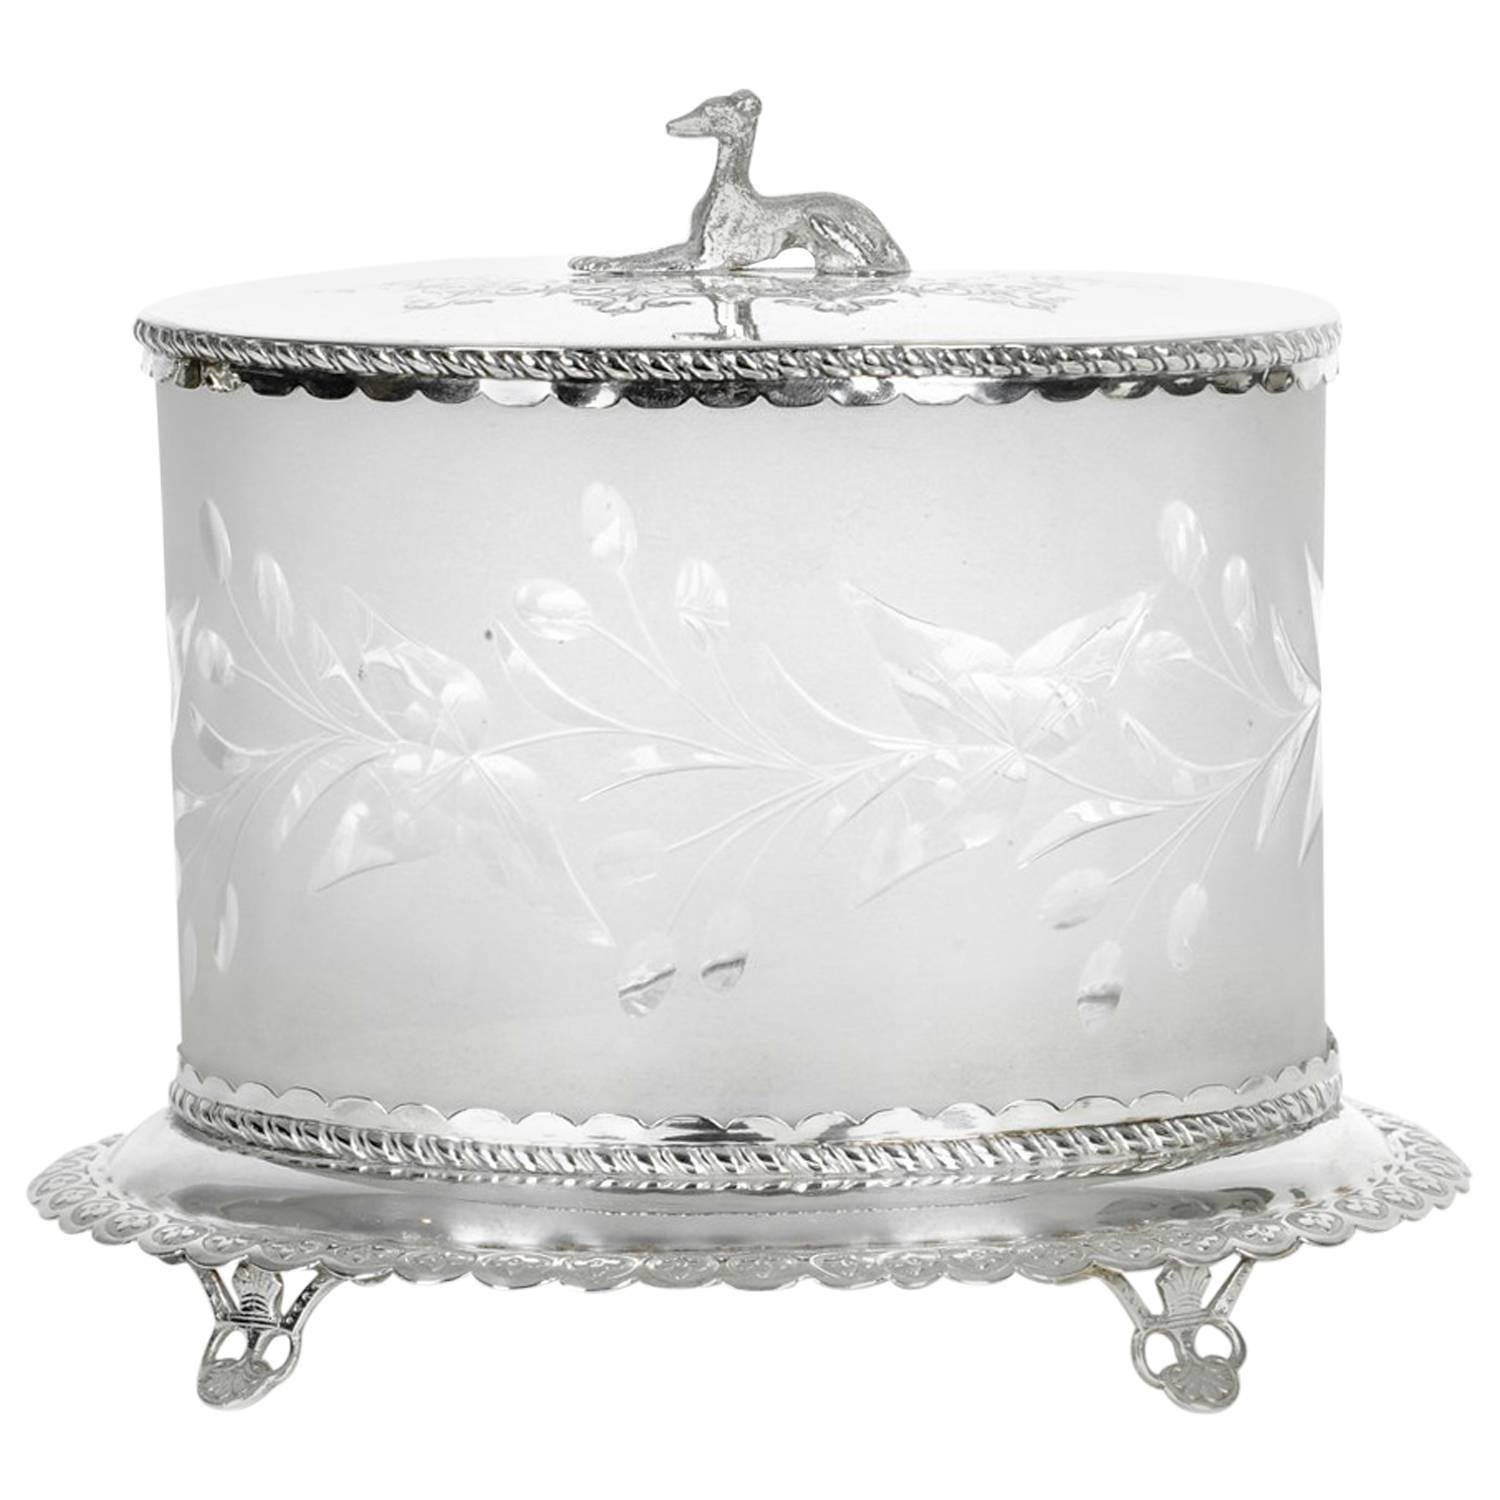 Antique English Oval Silver Plate / Cut Crystal Ice Bucket